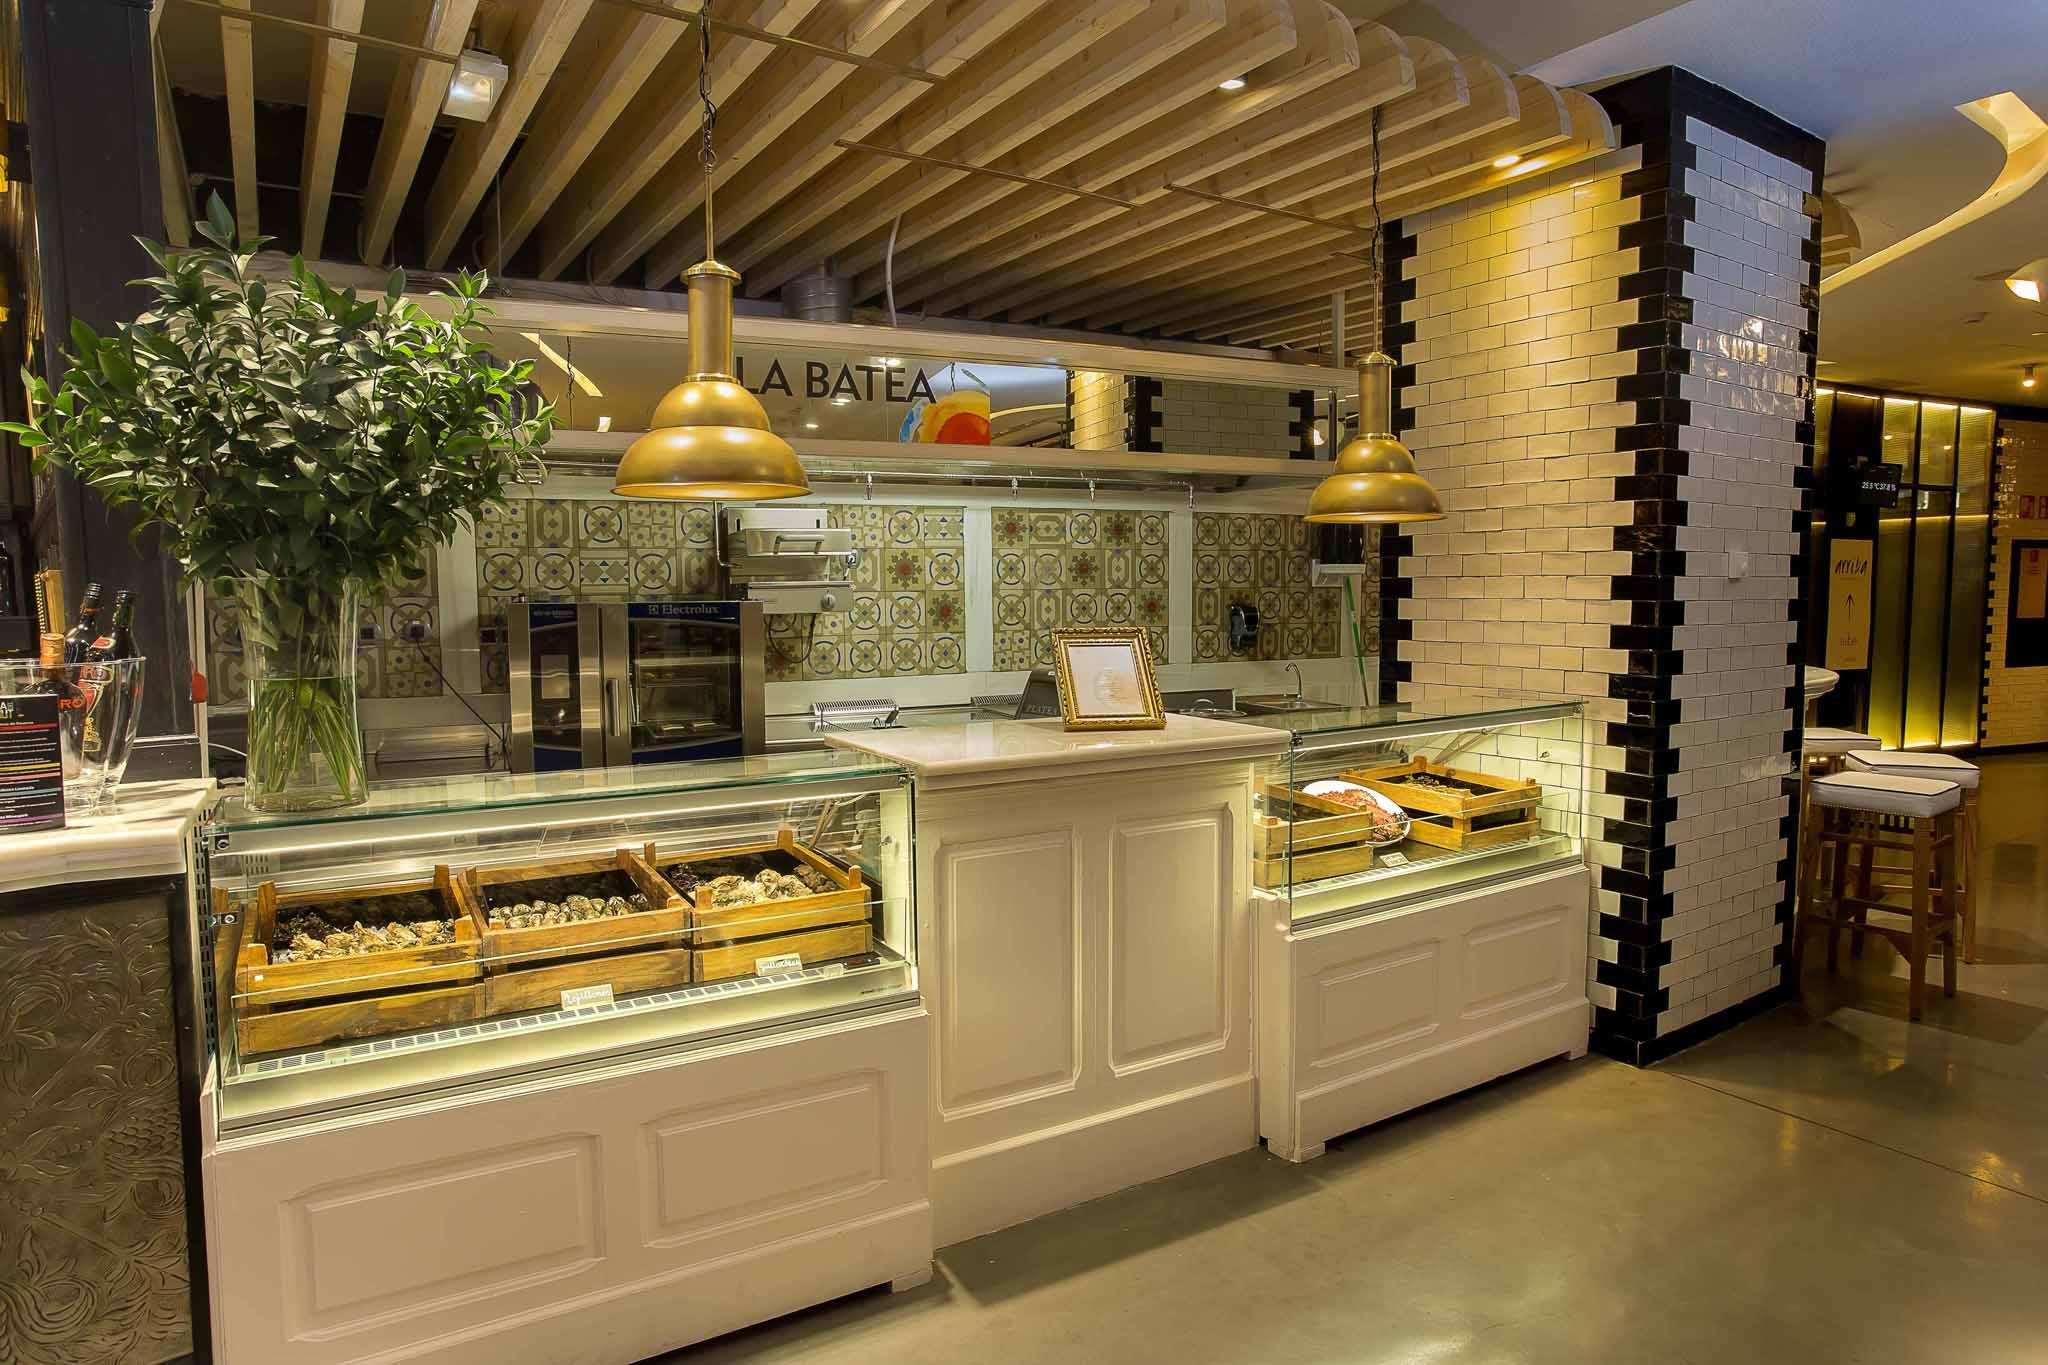 Gastronomic Space Madrid Spain